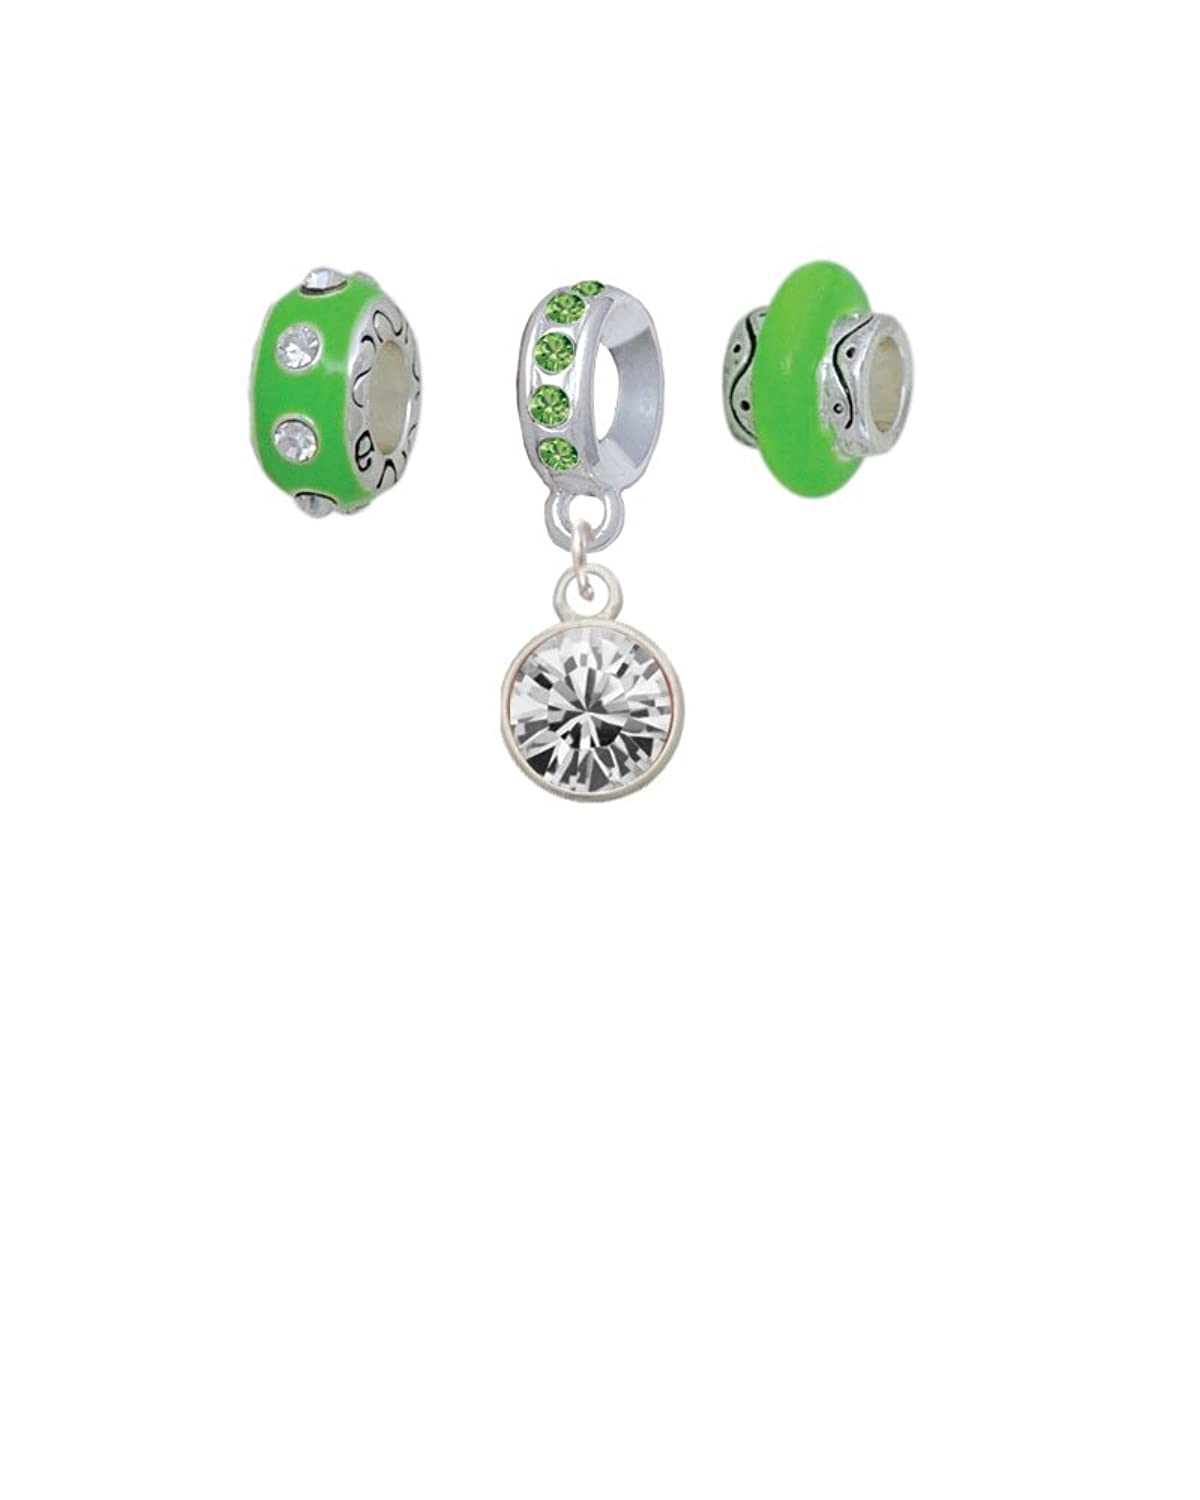 10mm Oktant Crystal Drop - Lime Green Charm Beads (Set of 3)